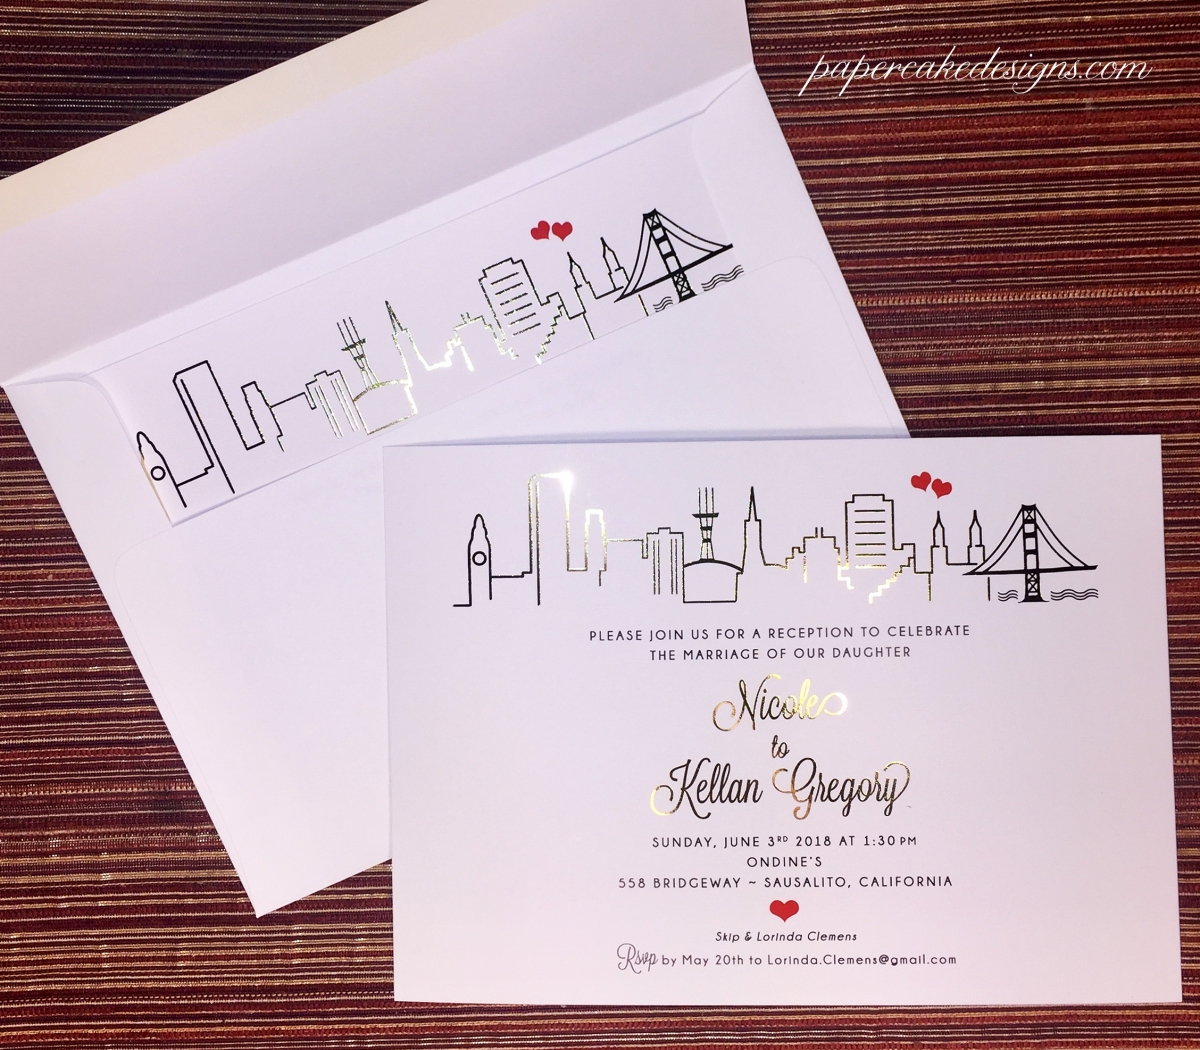 [custom invitations] a modern city skyline invite personalized for any event